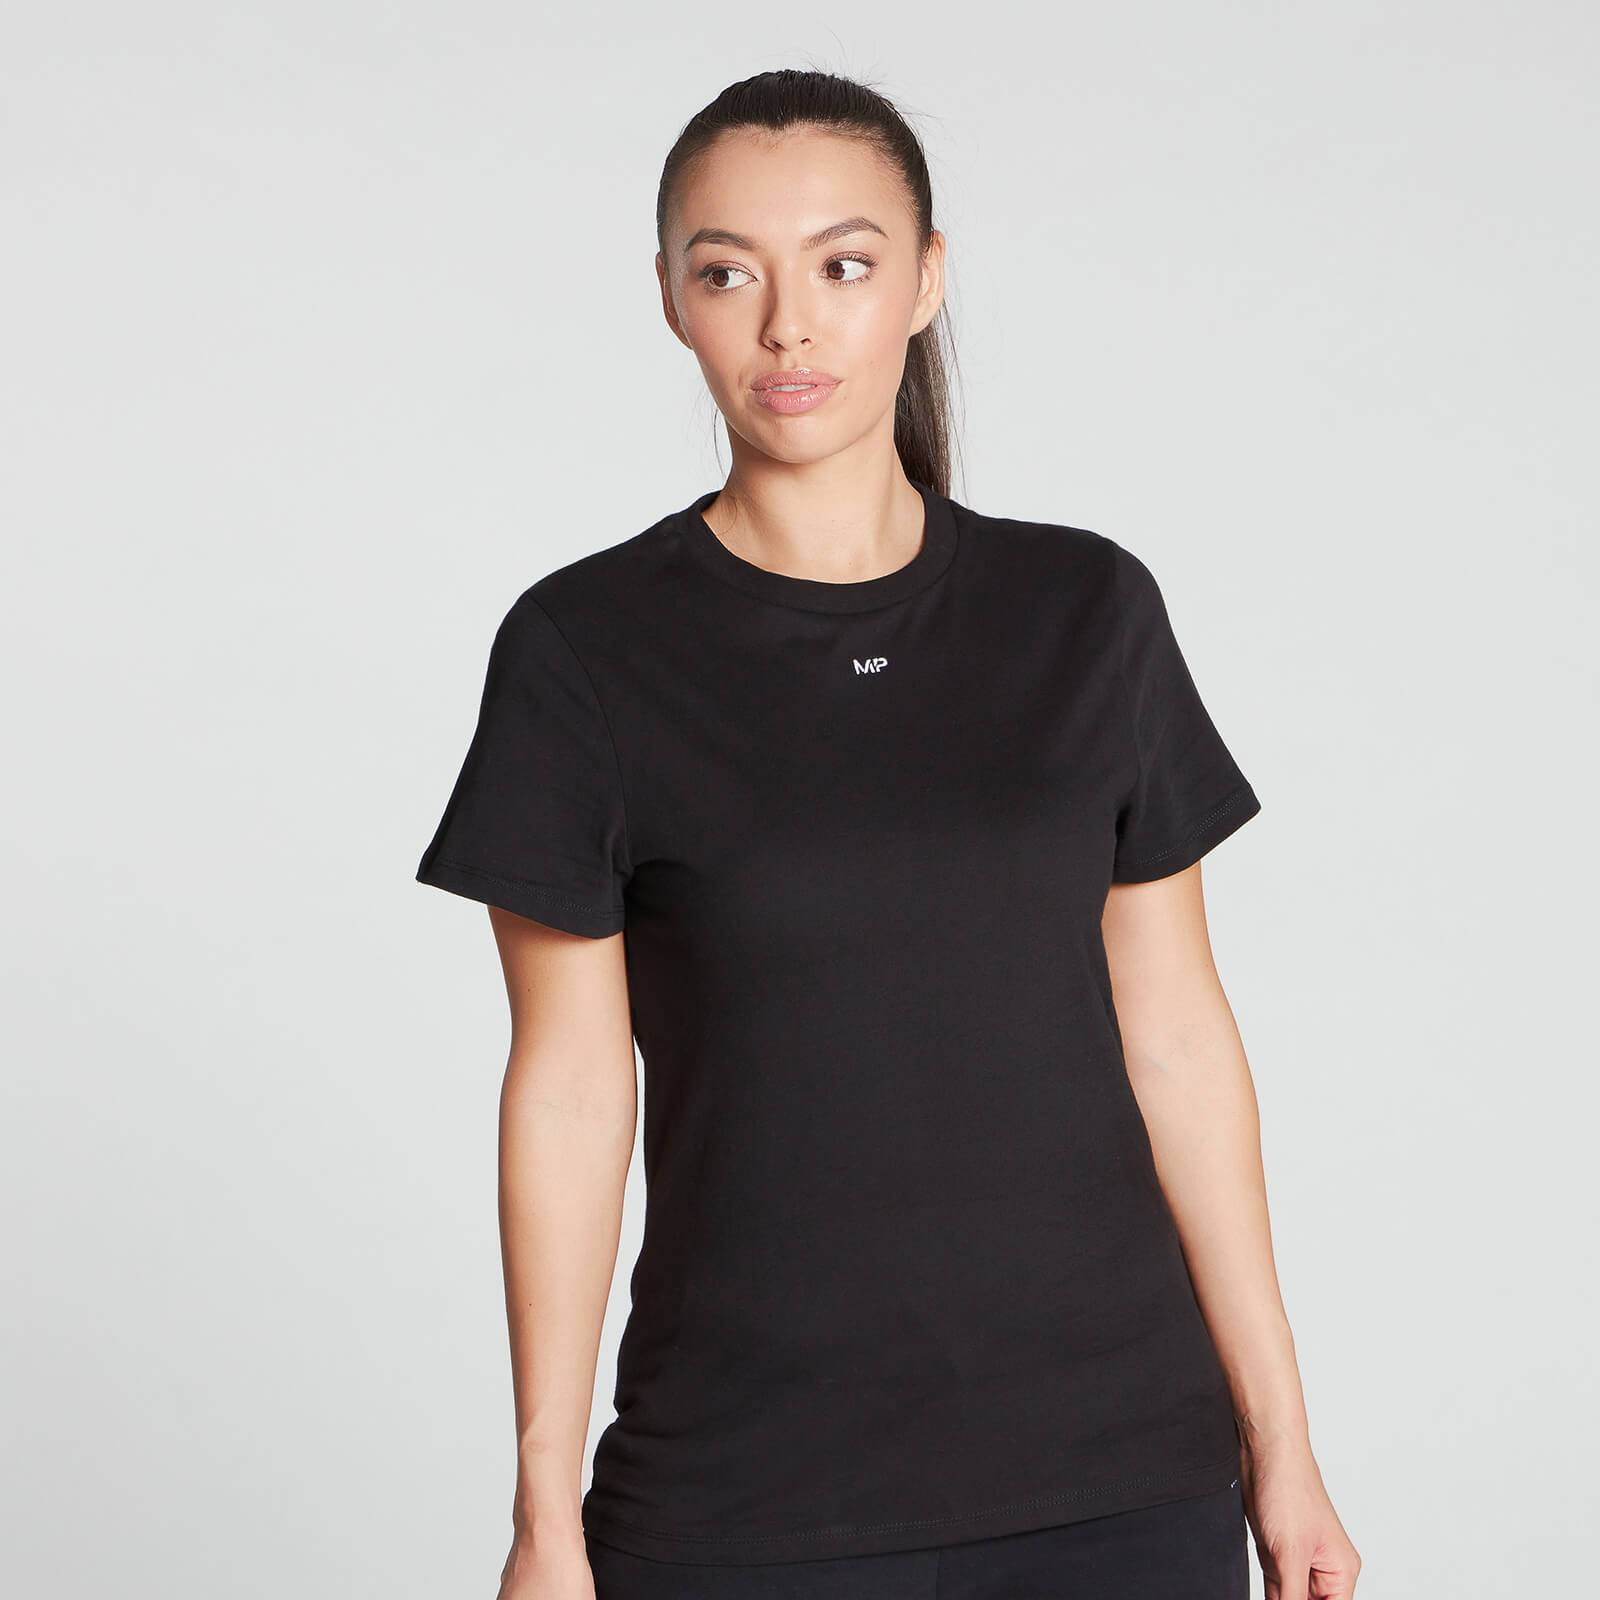 Myprotein T-shirt Essentials MP - Nero - XXS